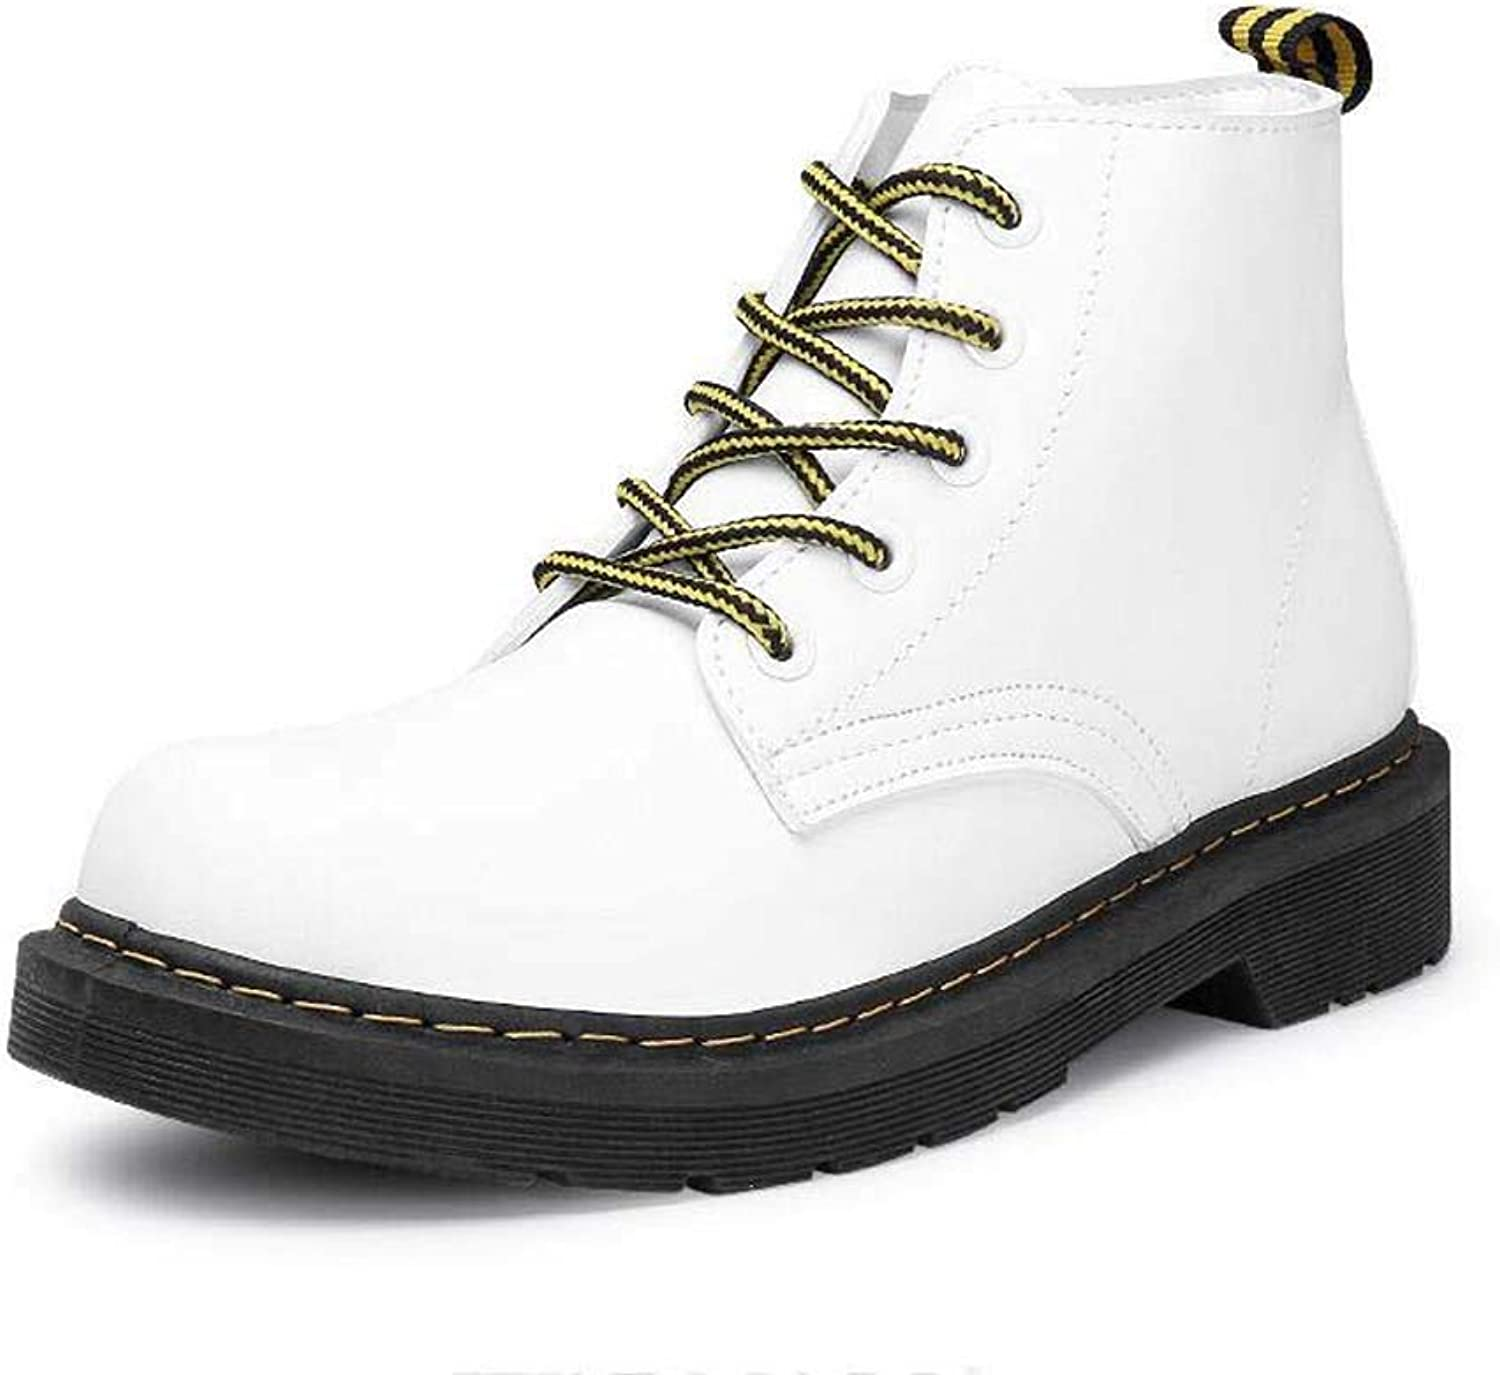 Womens Martin Boots Spring Autumn Retro Round Toe Lace Up Casual Motorcycle Ankle shoes